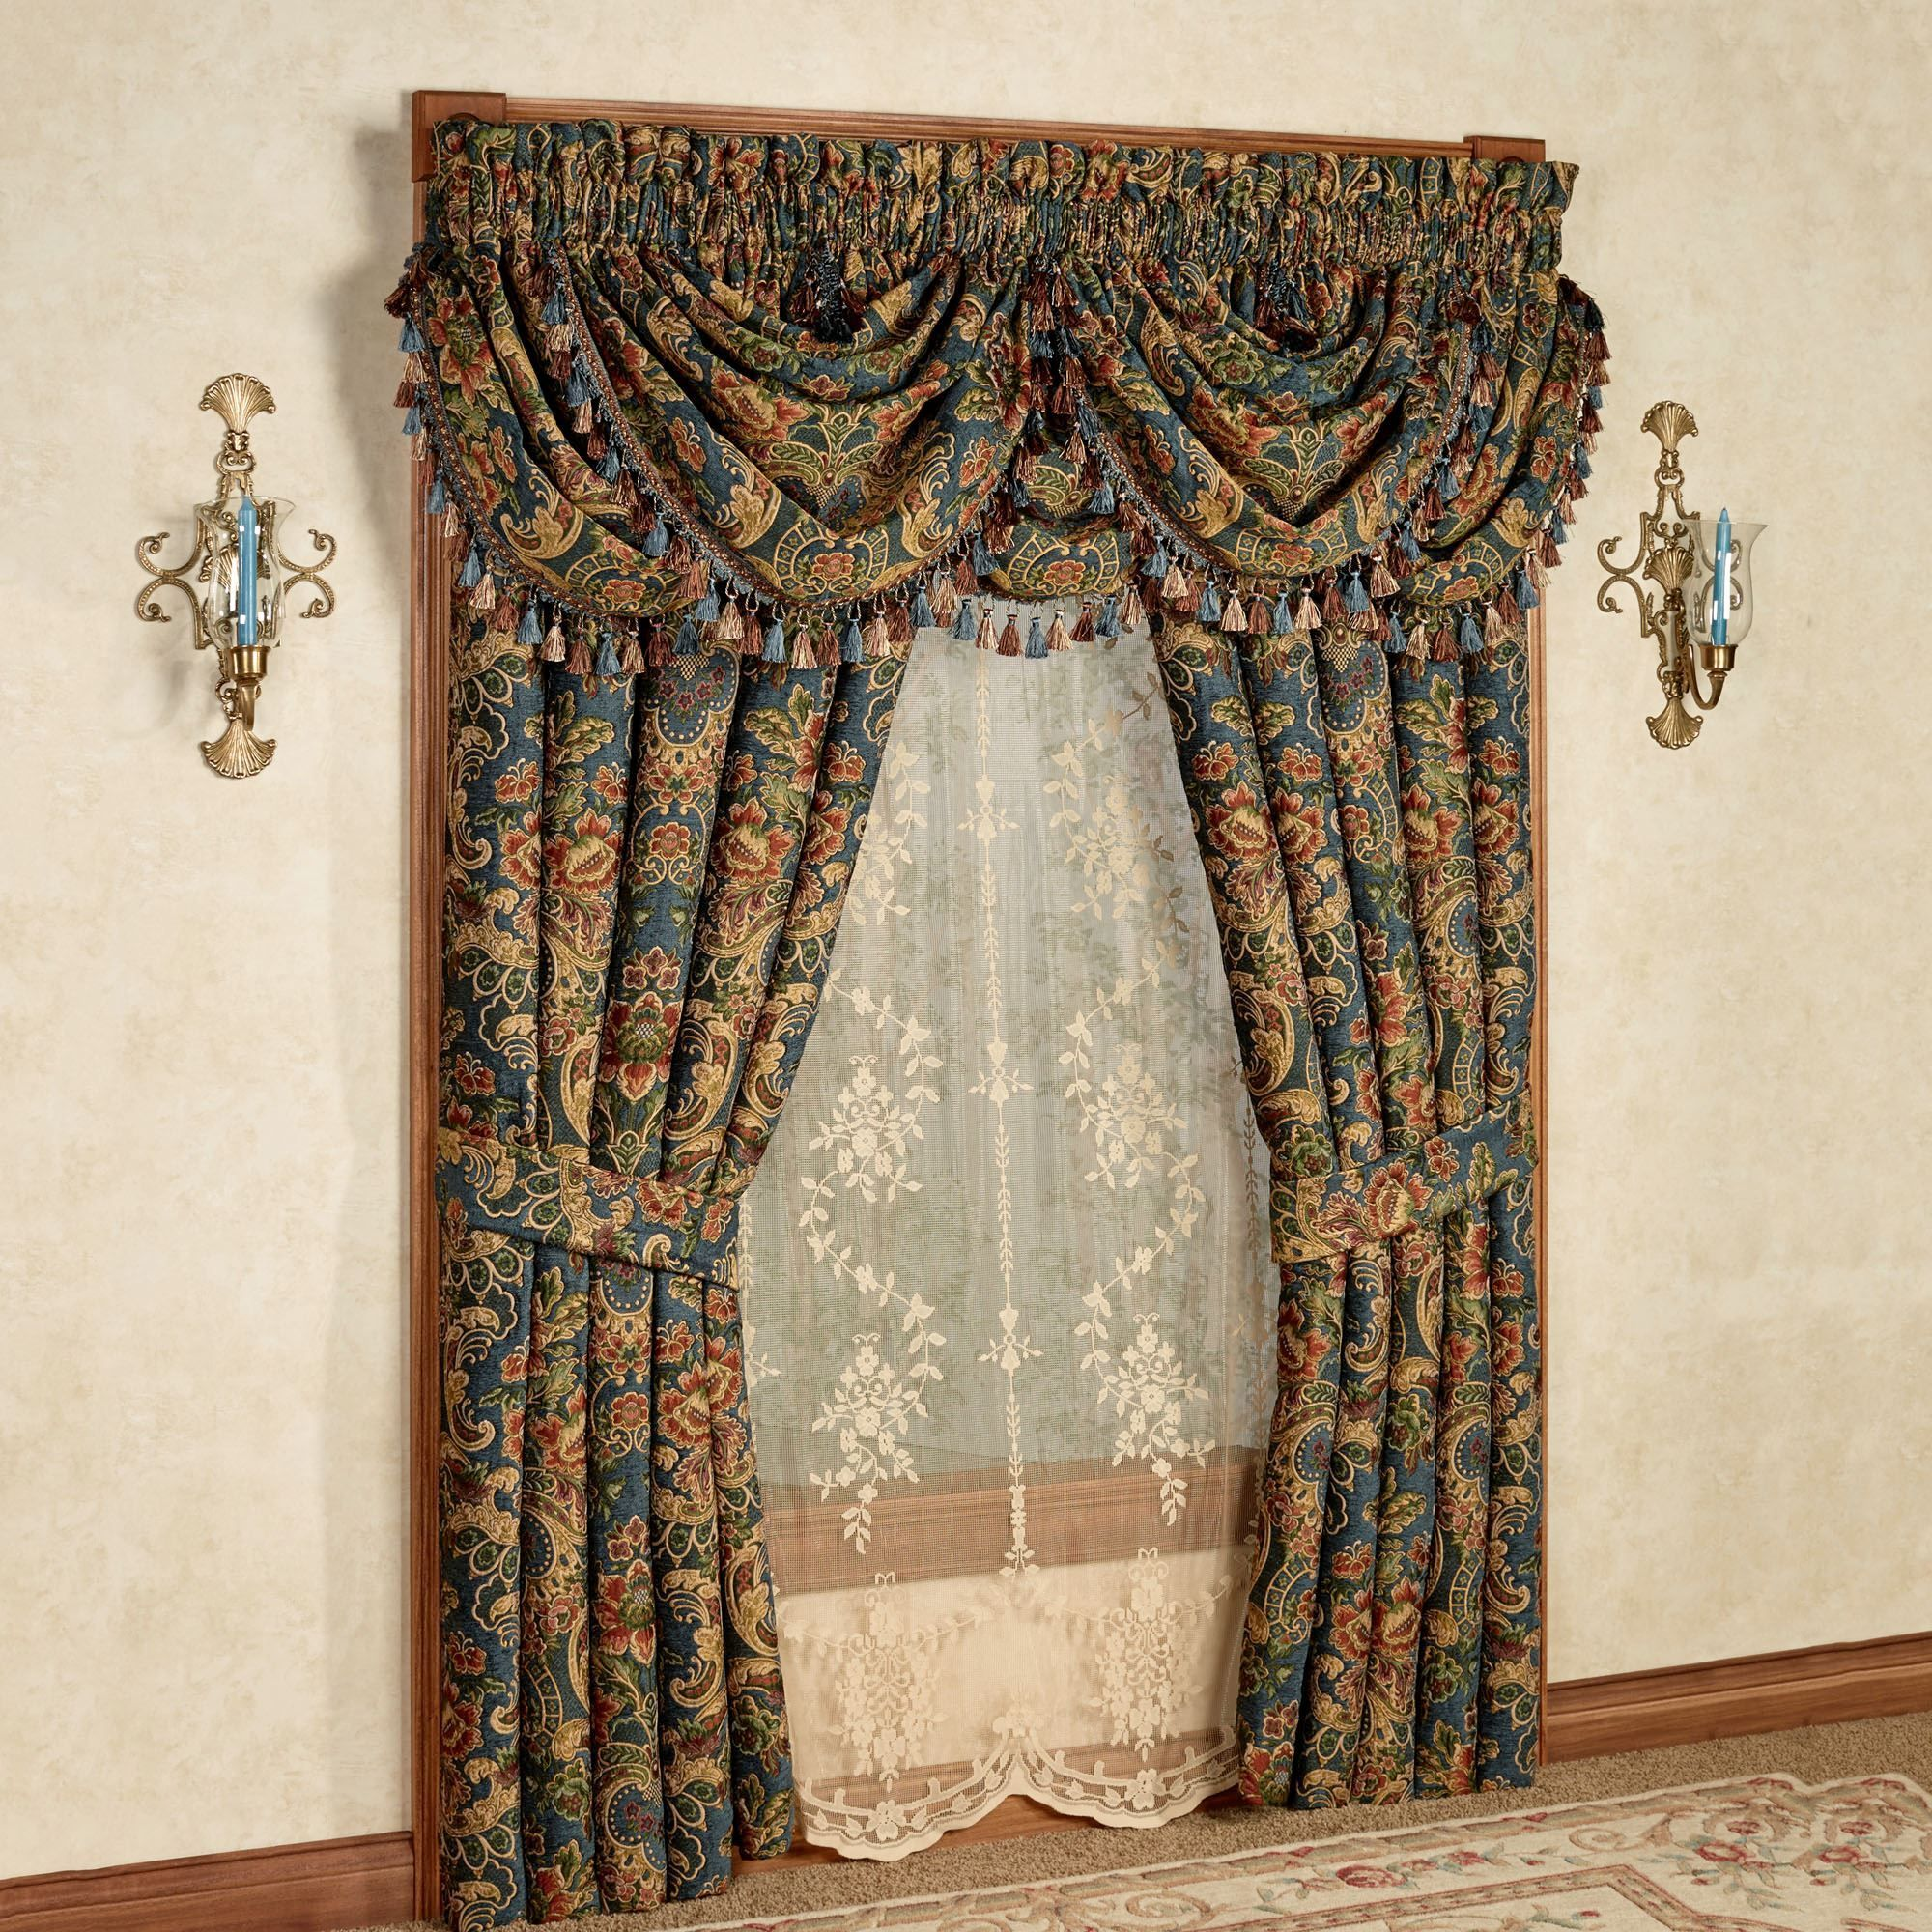 Cassandra jacobean floral window treatment by j queen new for New york style curtains